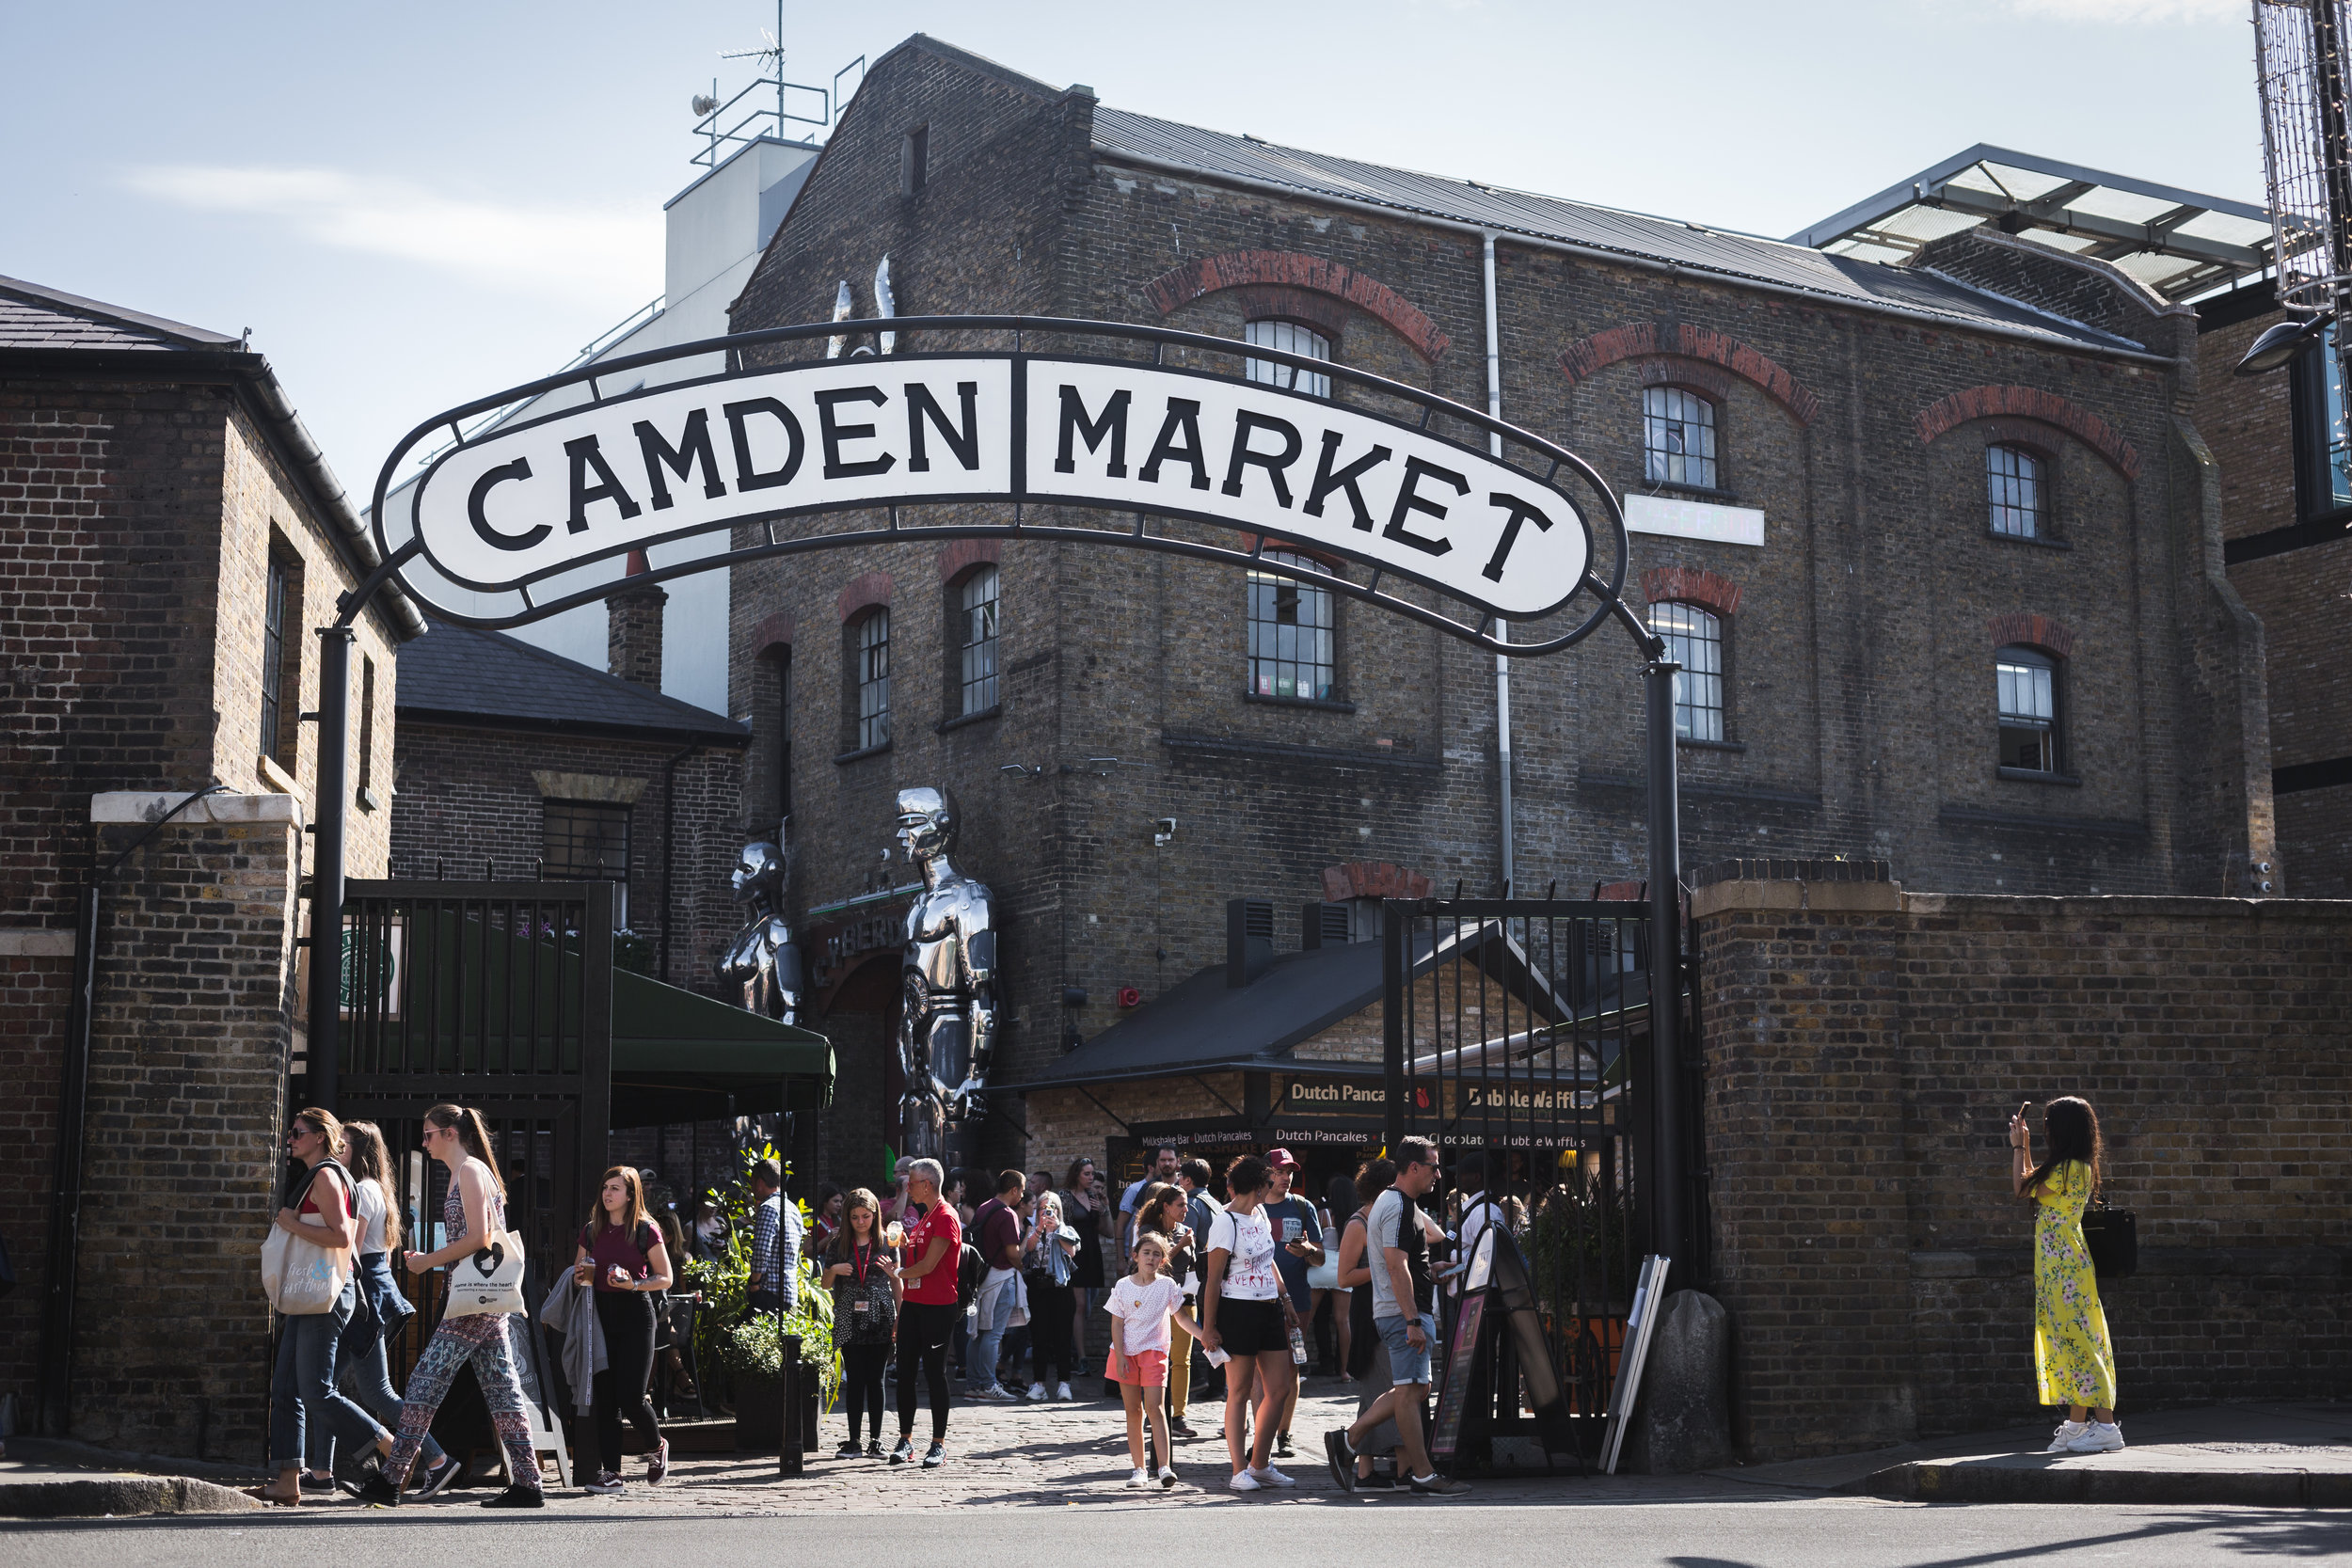 Camden market was just a short walk from Fellows' lodging this past summer and was a popular late-night food option, July 2019.